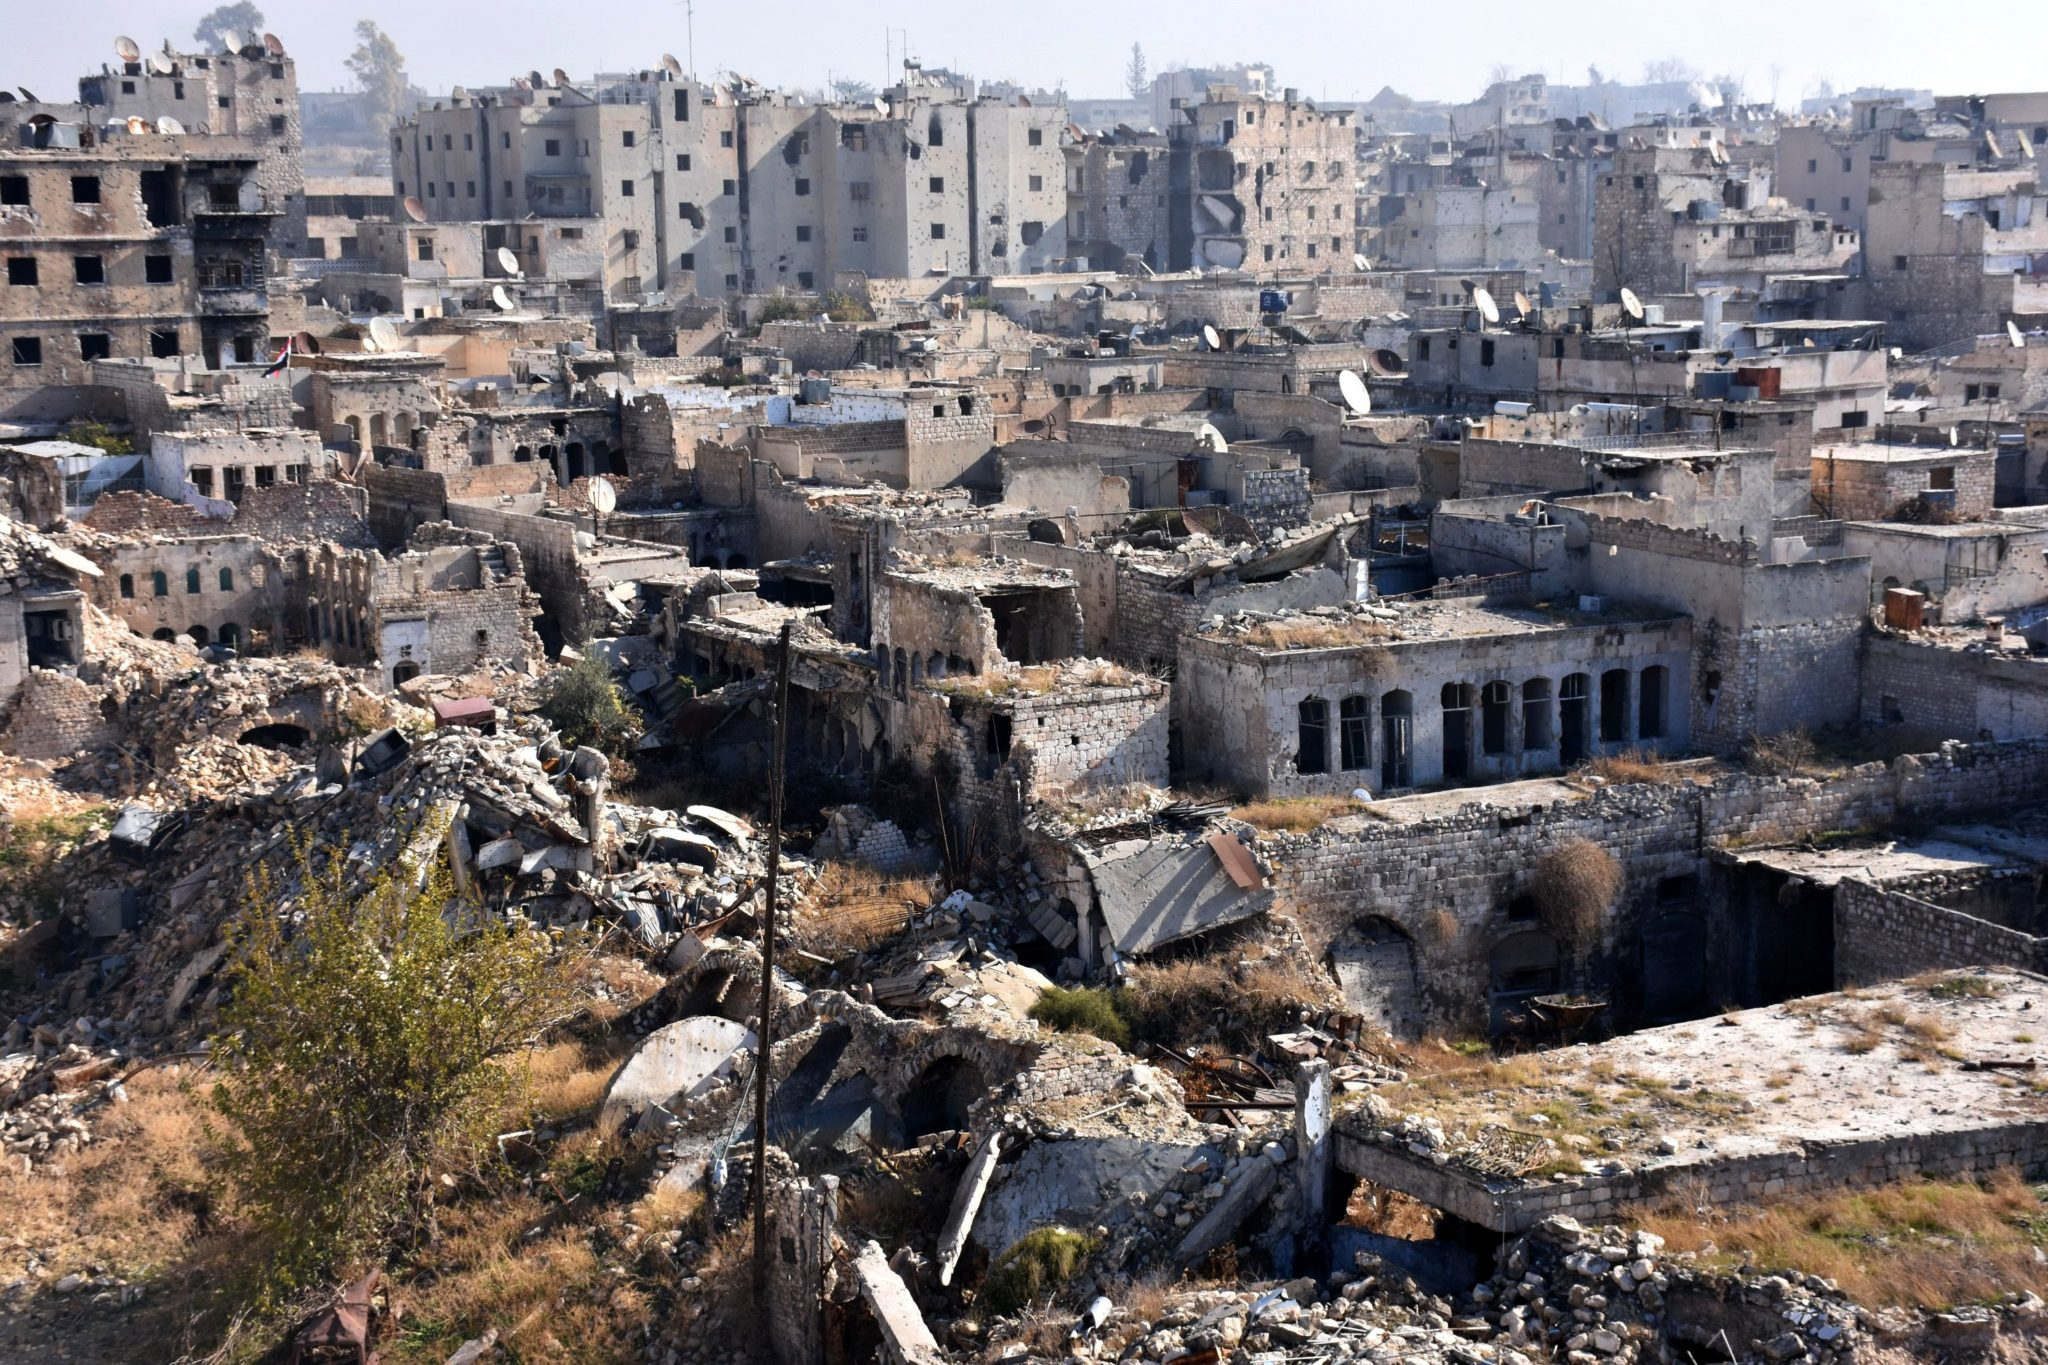 Syria: 'Surrender or starve' strategy displacing thousands amounts to crimes against humanity